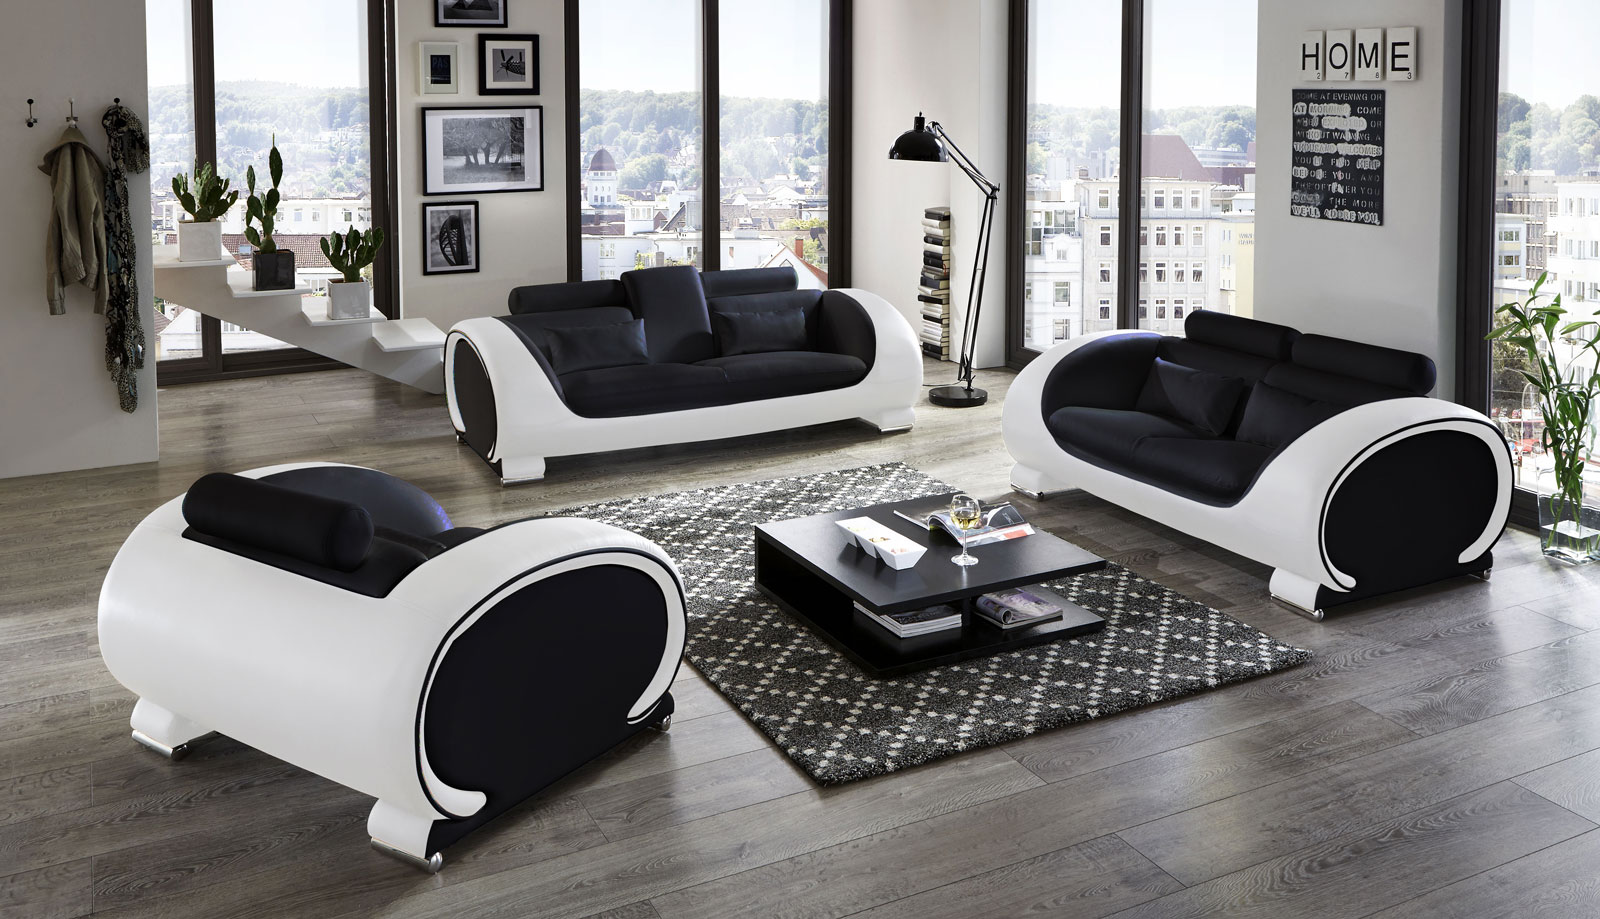 sam sofa garnitur 3tlg in schwarz wei vigo 3 2 1 auf lager. Black Bedroom Furniture Sets. Home Design Ideas